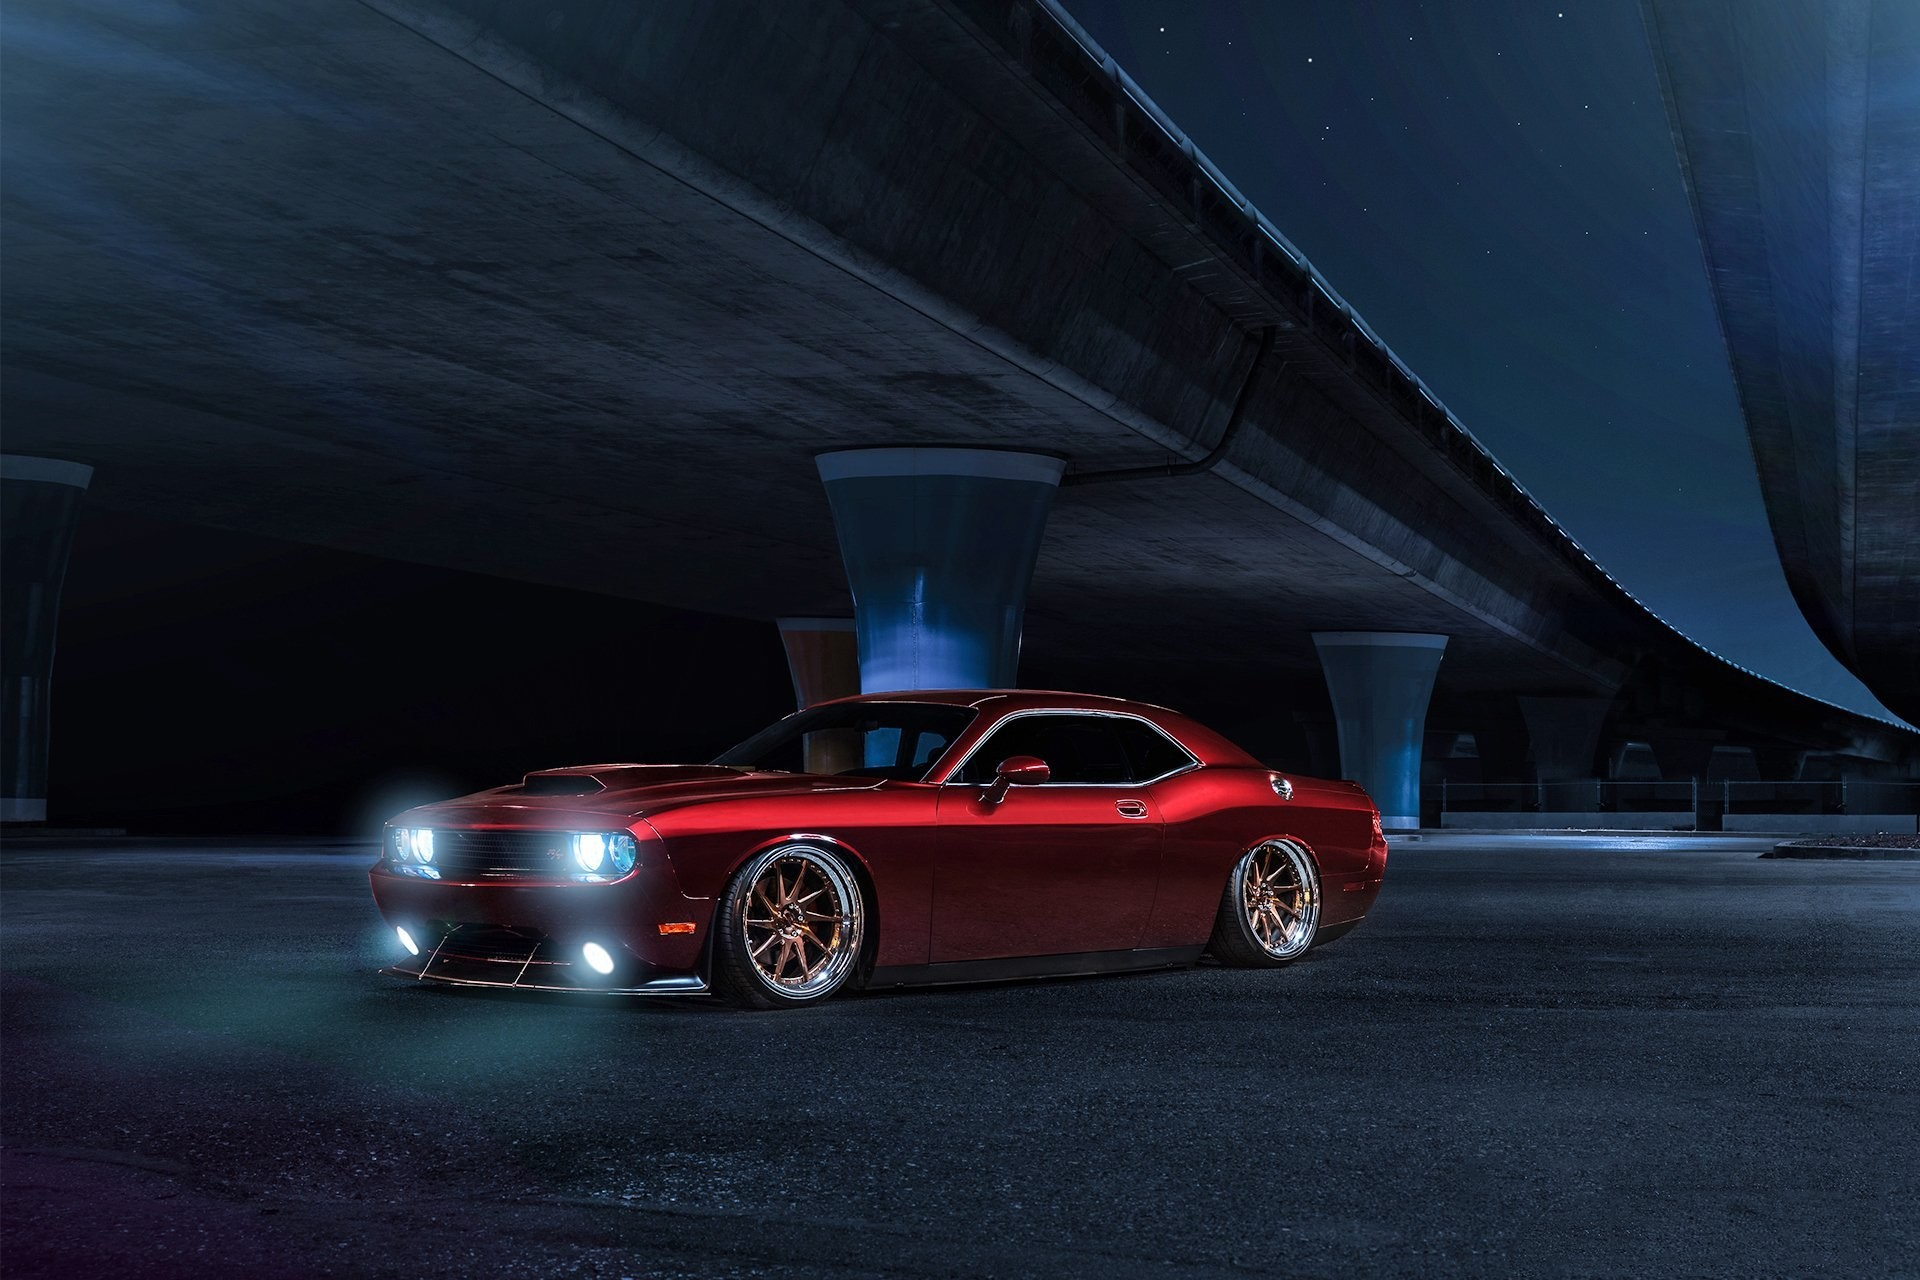 1920x1280 dodge challenger avant garde wheels american muscle car candy red front